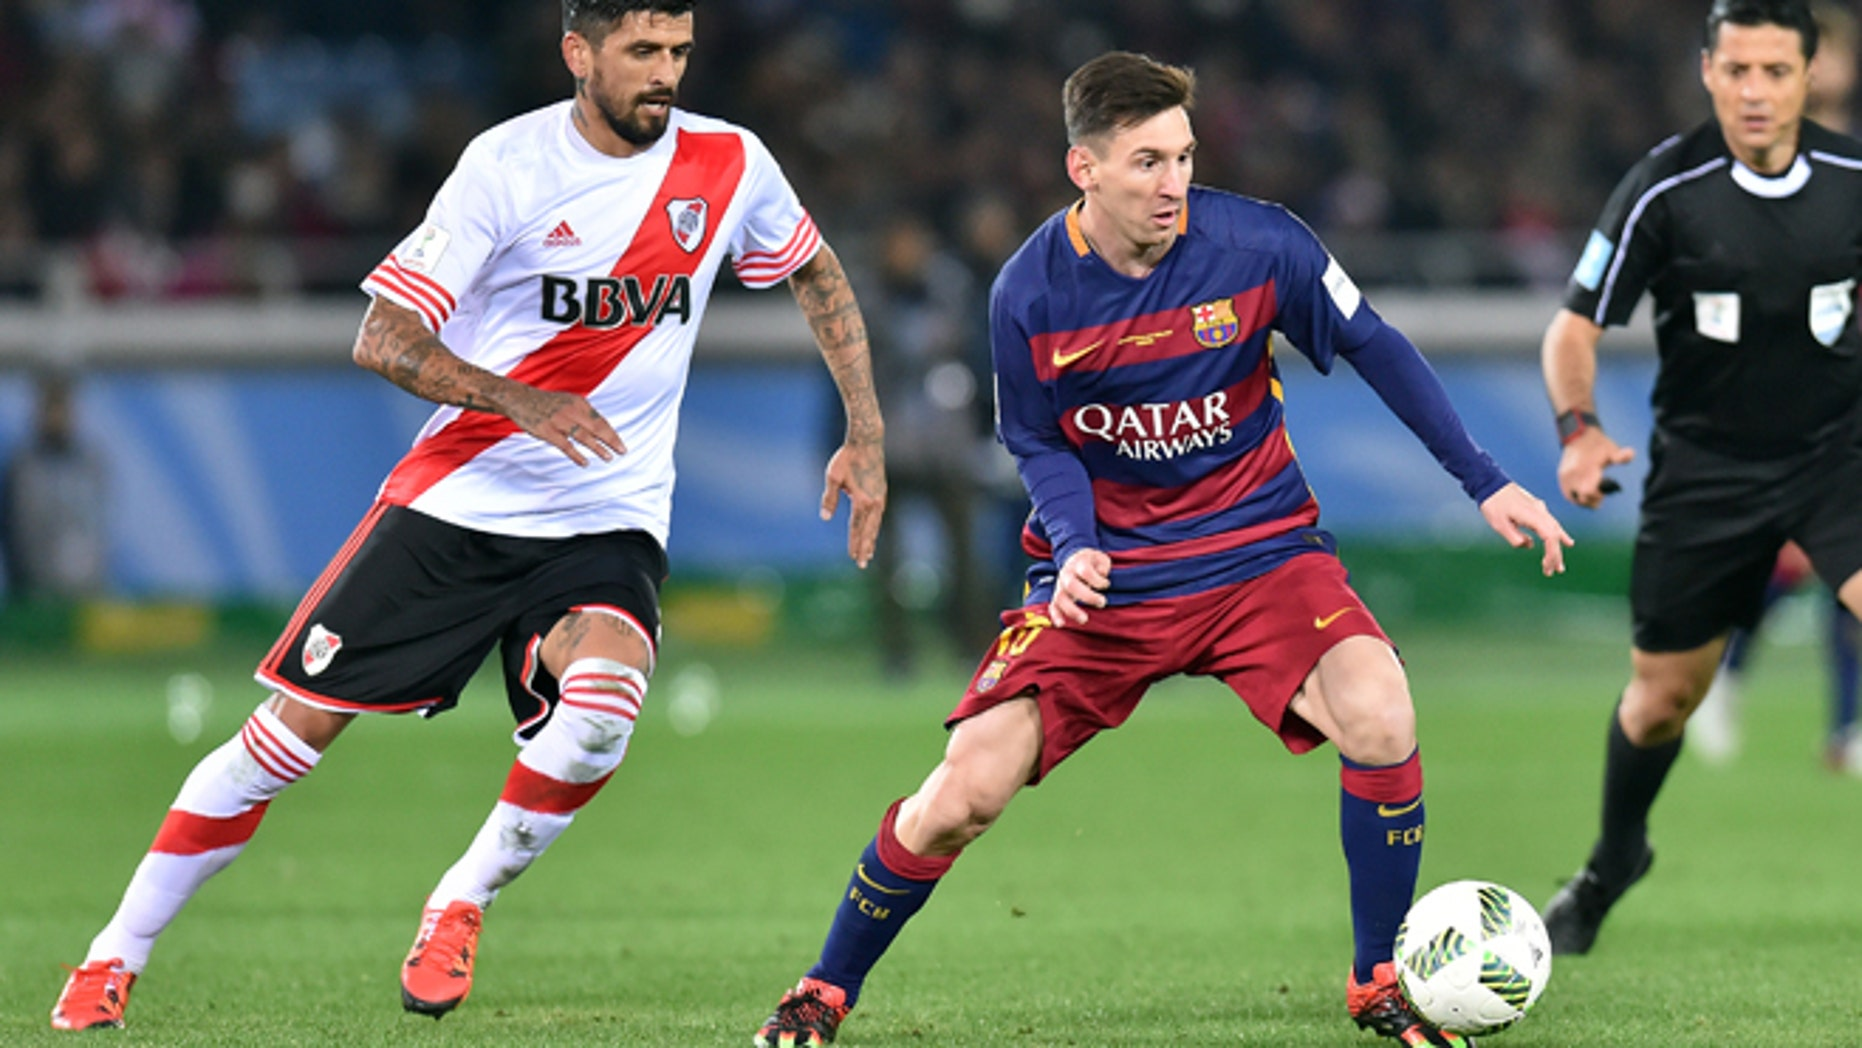 YOKOHAMA, JAPAN - DECEMBER 20:  Lionel Messi of FC Barcelona controls the ball during the final match between River Plate and FC Barcelona at International Stadium Yokohama on December 20, 2015 in Yokohama, Japan.  (Photo by Atsushi Tomura/Getty Images)